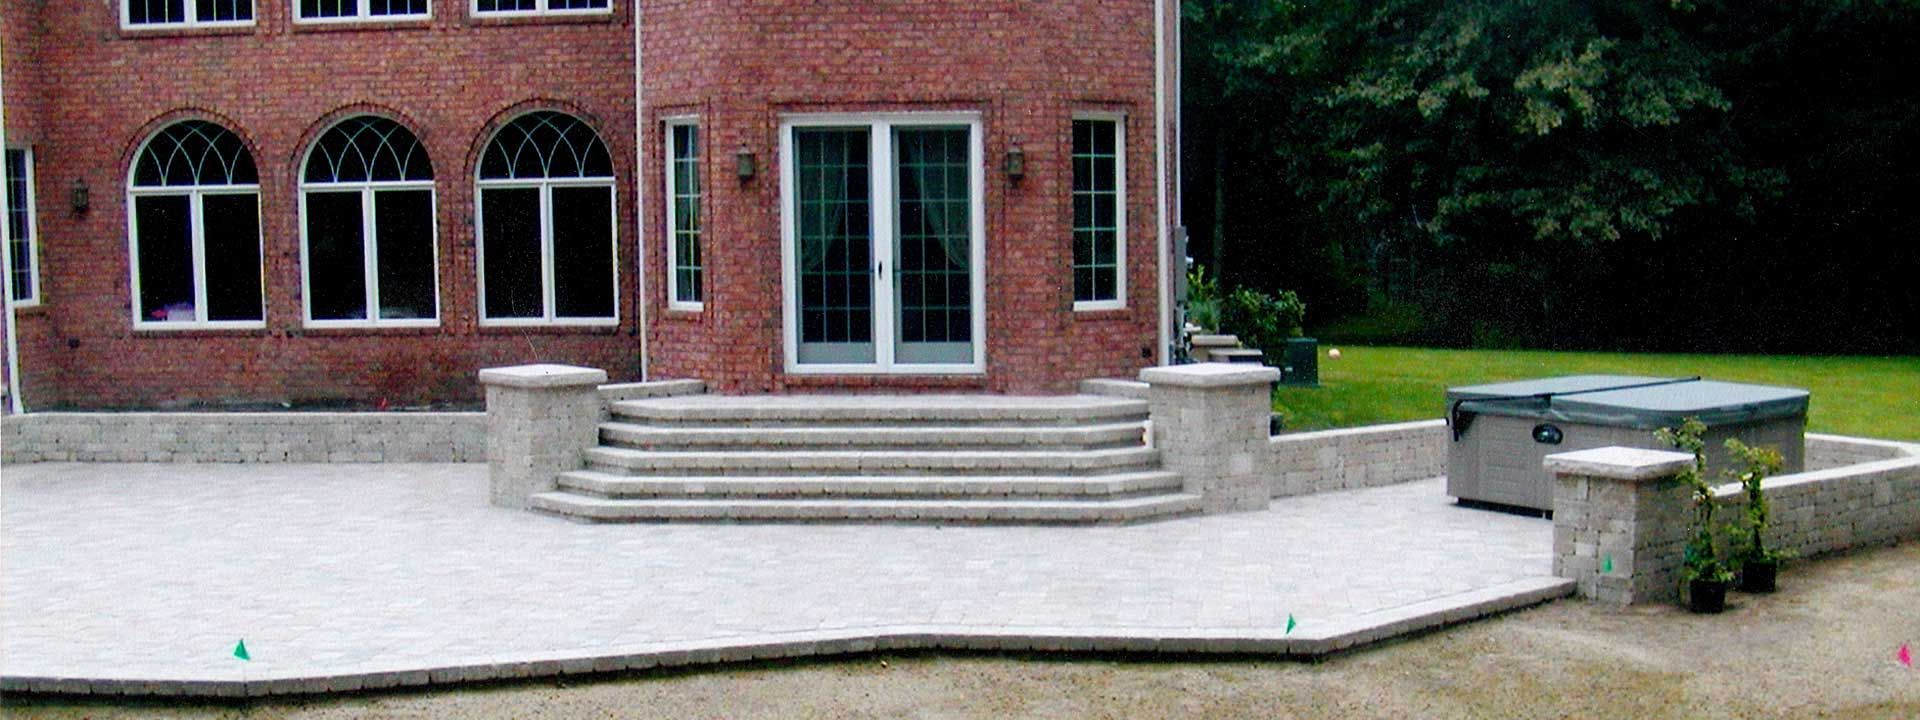 Patio Construction Ideas Available In The Toledo Ohio Area As Contractors We Design And Build Retaining Walls Designs Paver Brick Walks